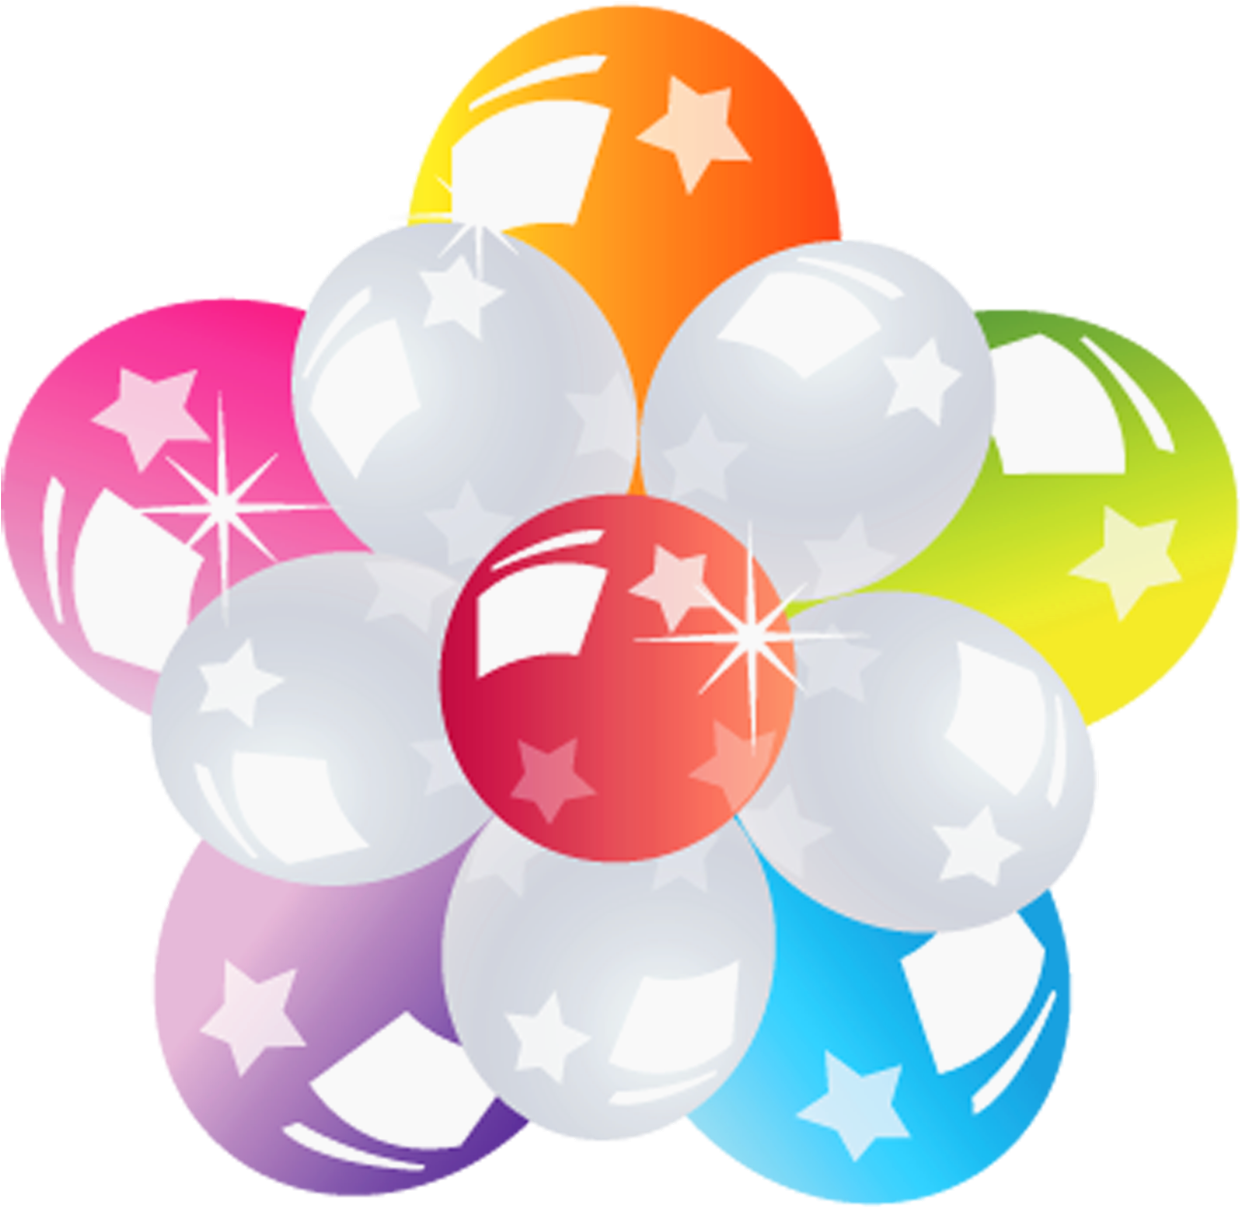 Png format images. Balloons bunch transparent picture